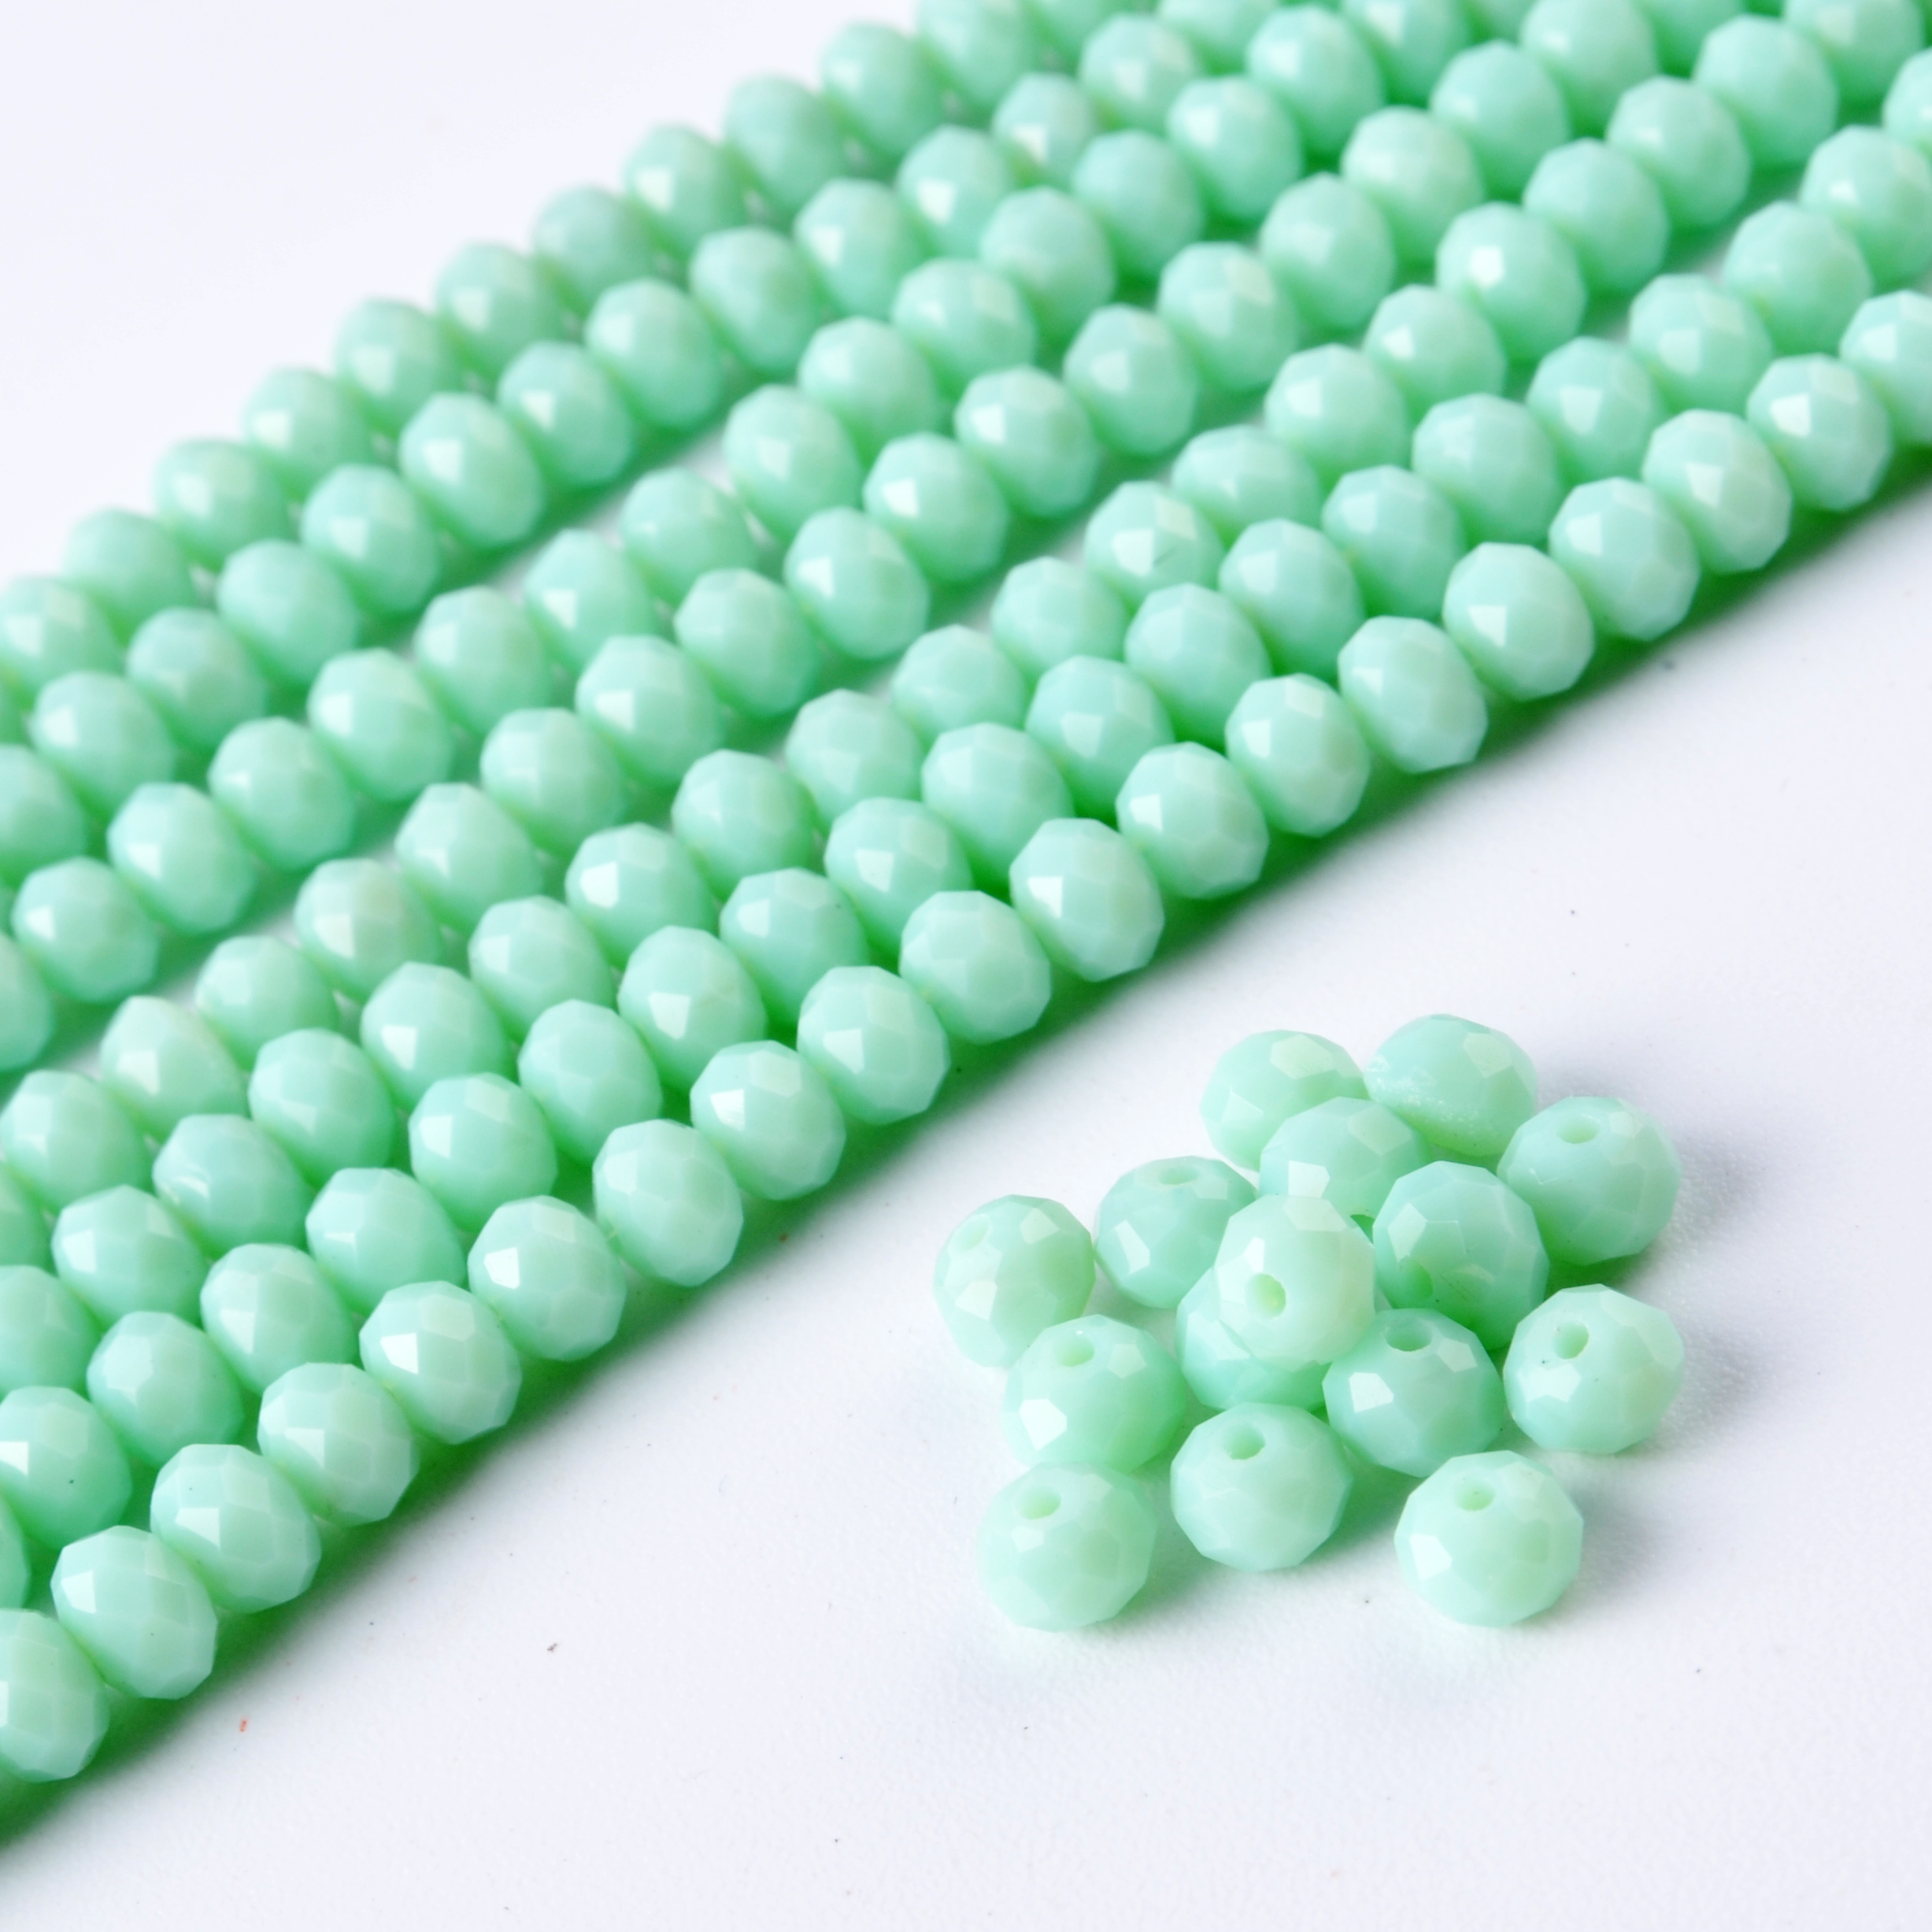 Wholesale colorful beads Glass Rondelle Beads <strong>crystal</strong>, lampwork &amp; glass beads